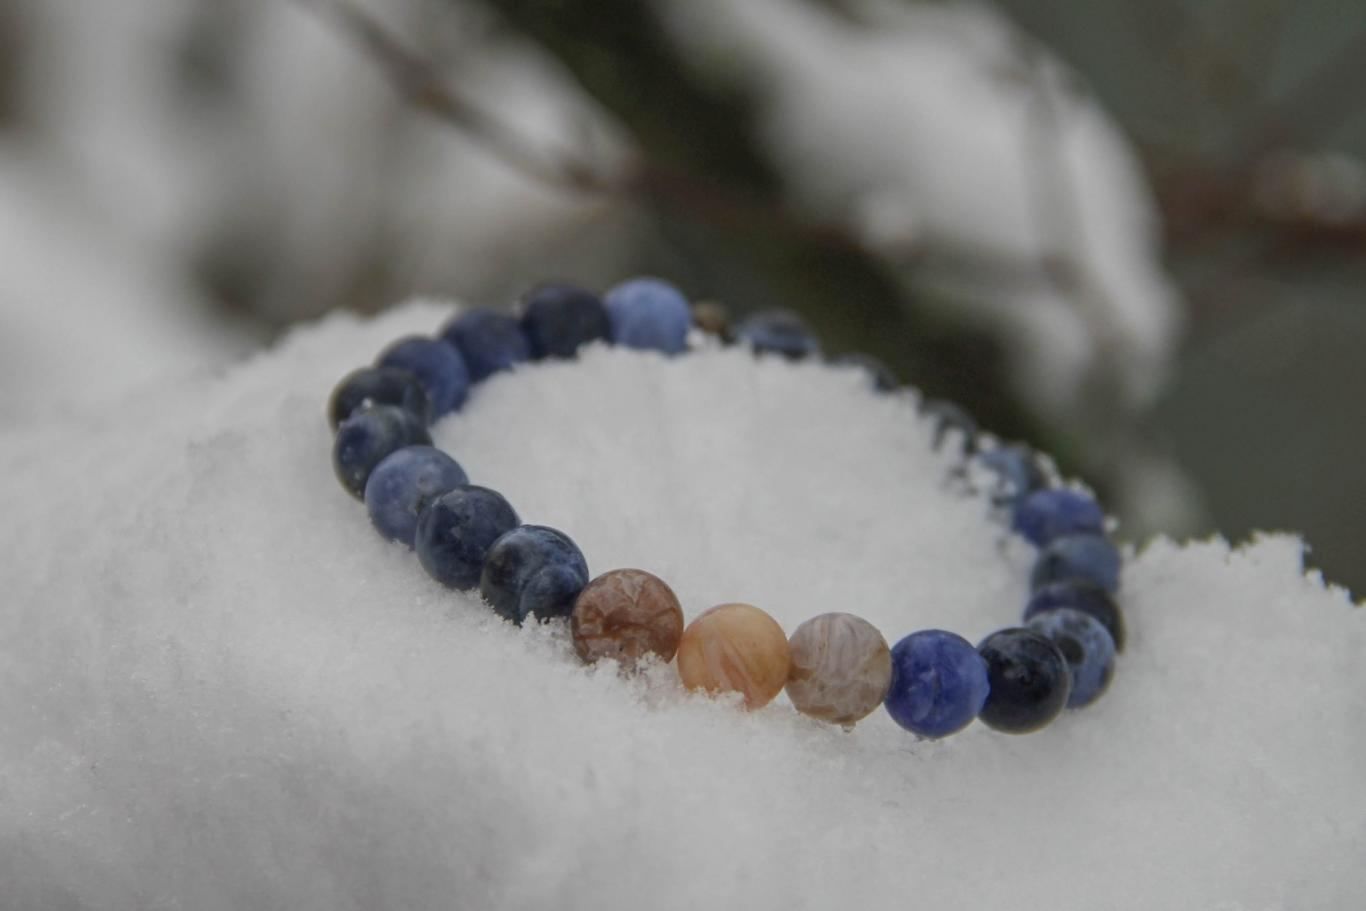 Blue Coral and Agate Stone Bracelet - 6mm2